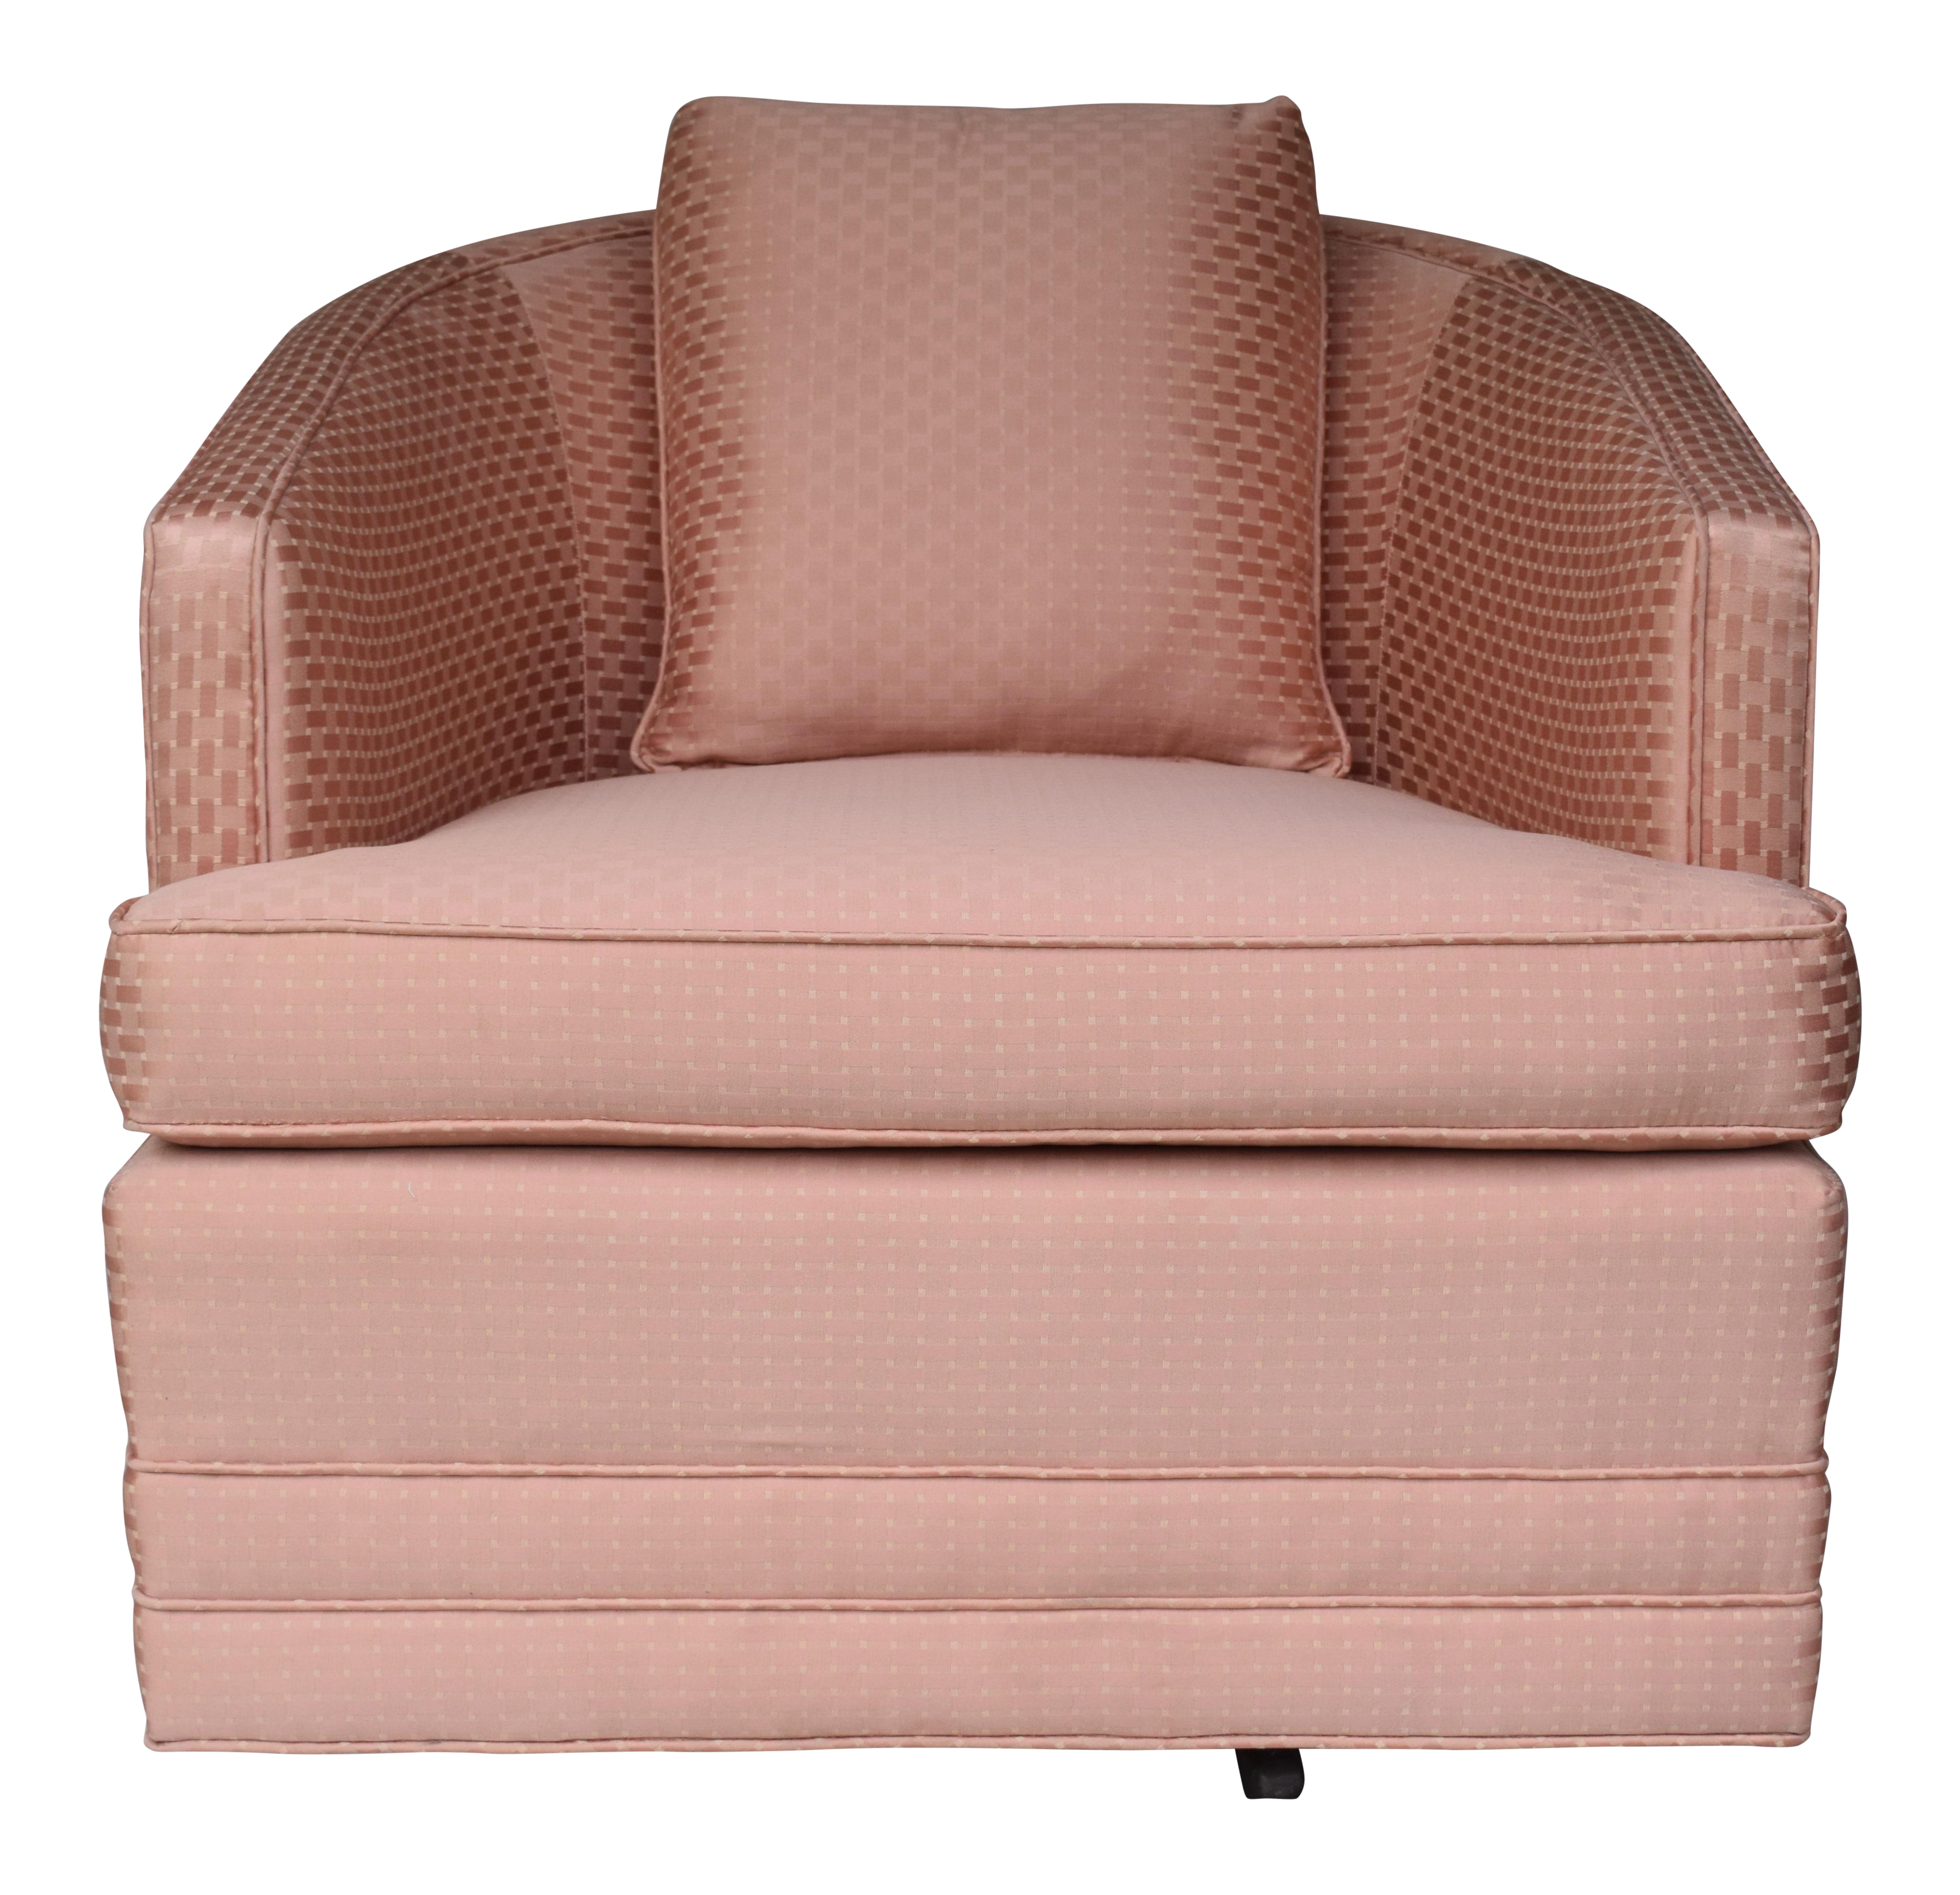 Swivel Lounge Chair By Century Furniture